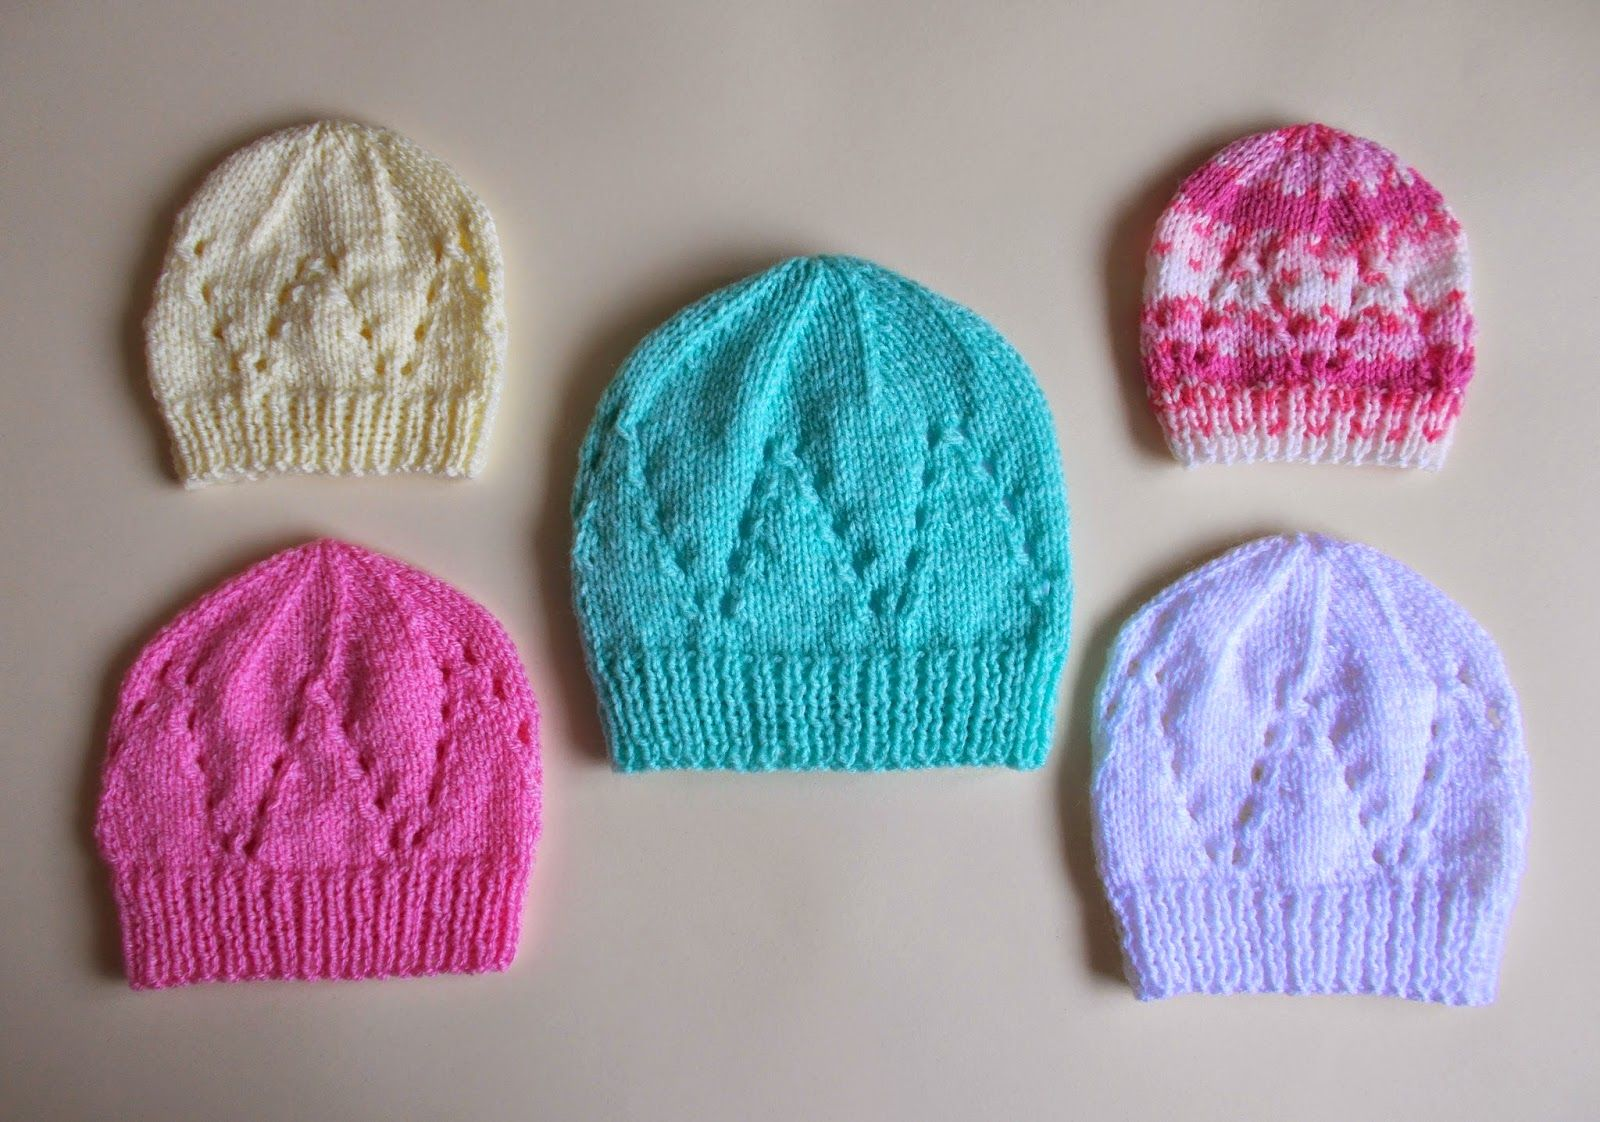 4c87f55e marianna's lazy daisy days: Matching Hat for all-in-one baby top ...